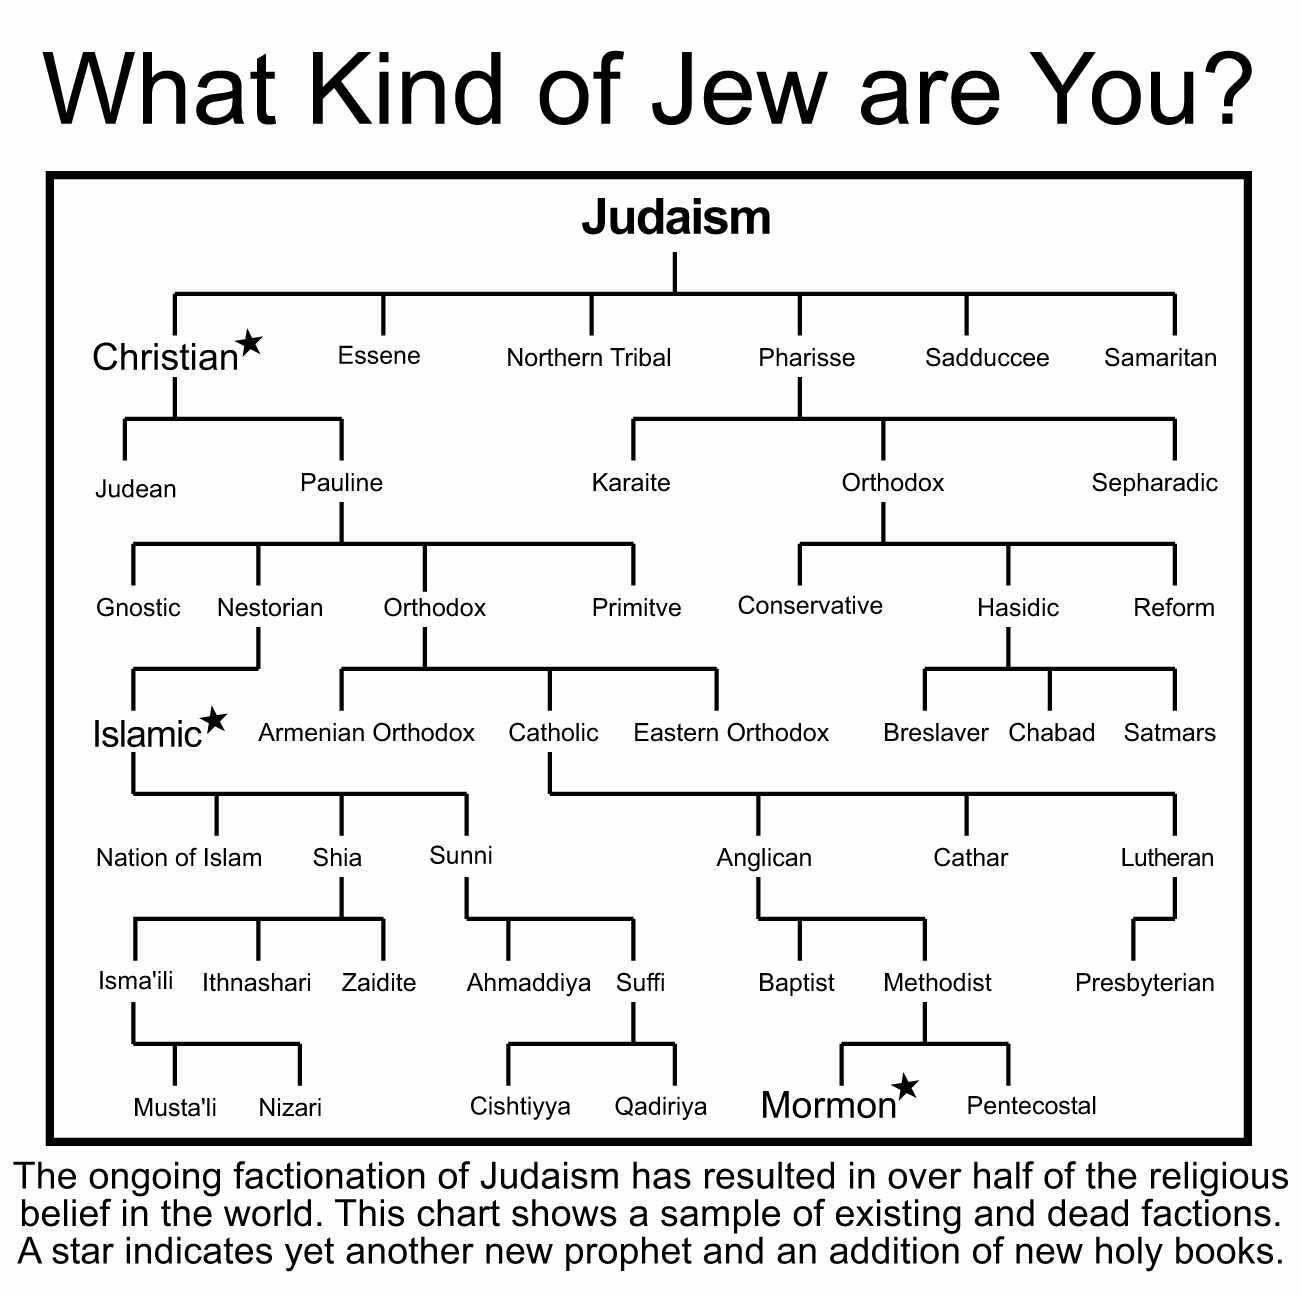 branches of judaism Judaism is the oldest of the world's four biggest monotheistic religions (religions with only one god) it's also the smallest, with only about 12 million followers around the world.